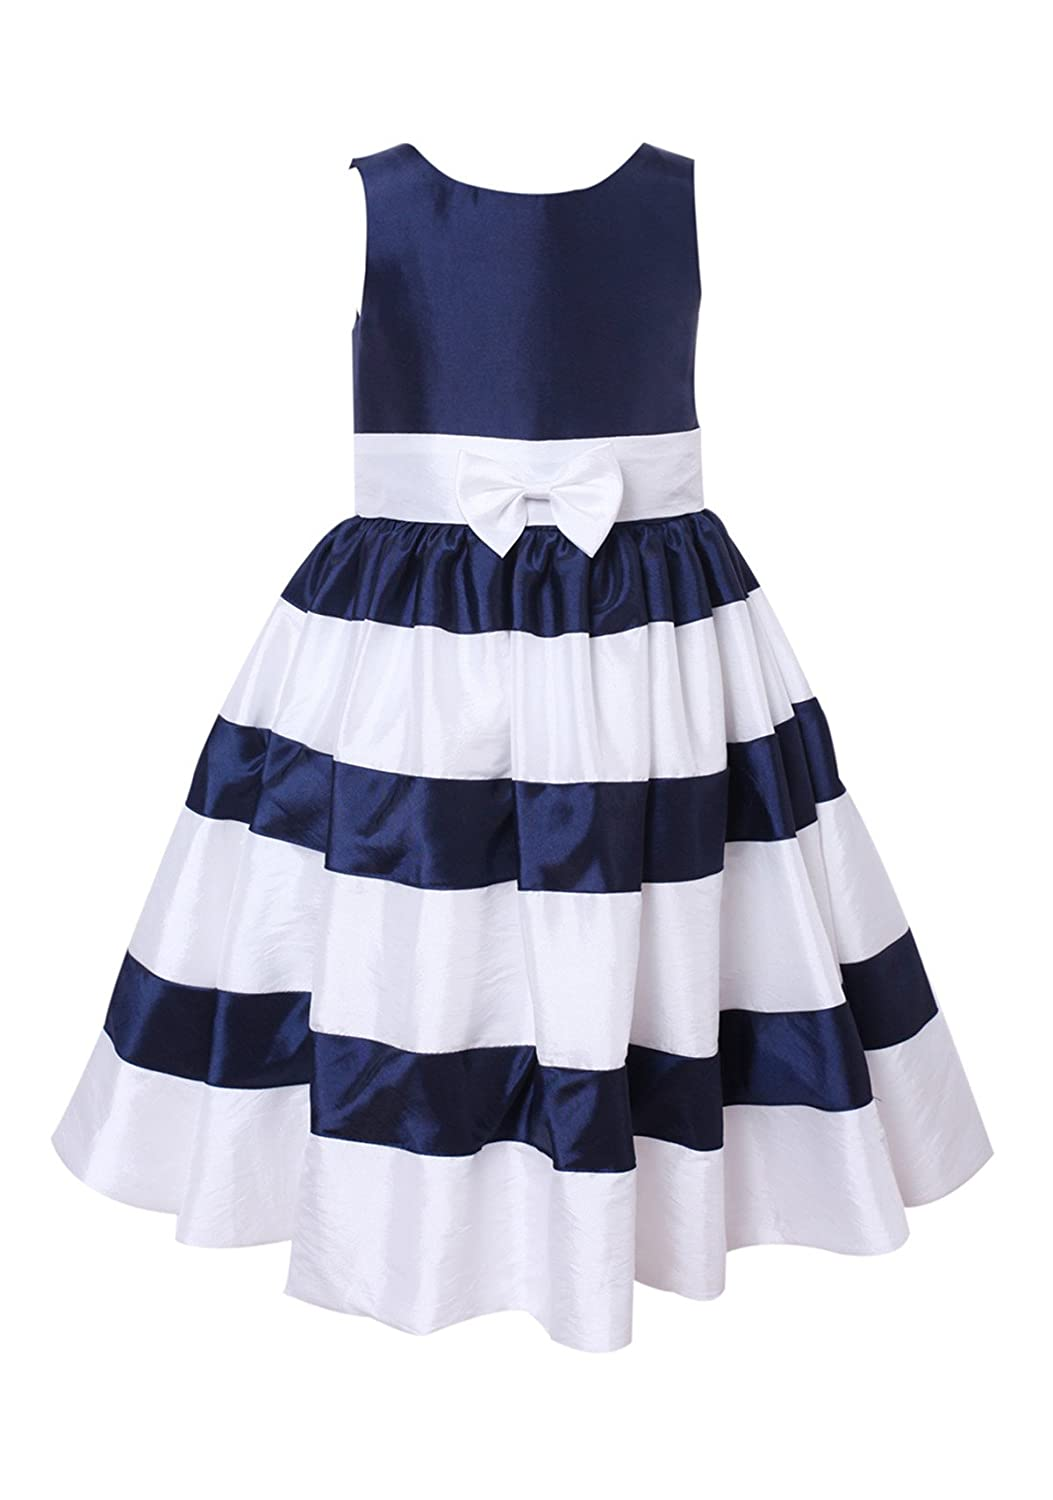 4c362e5b659 Amazon.com  princhar Ivory Navy Stripe Flower Girl Dress Little Girl  Toddler Formal Dress  Clothing